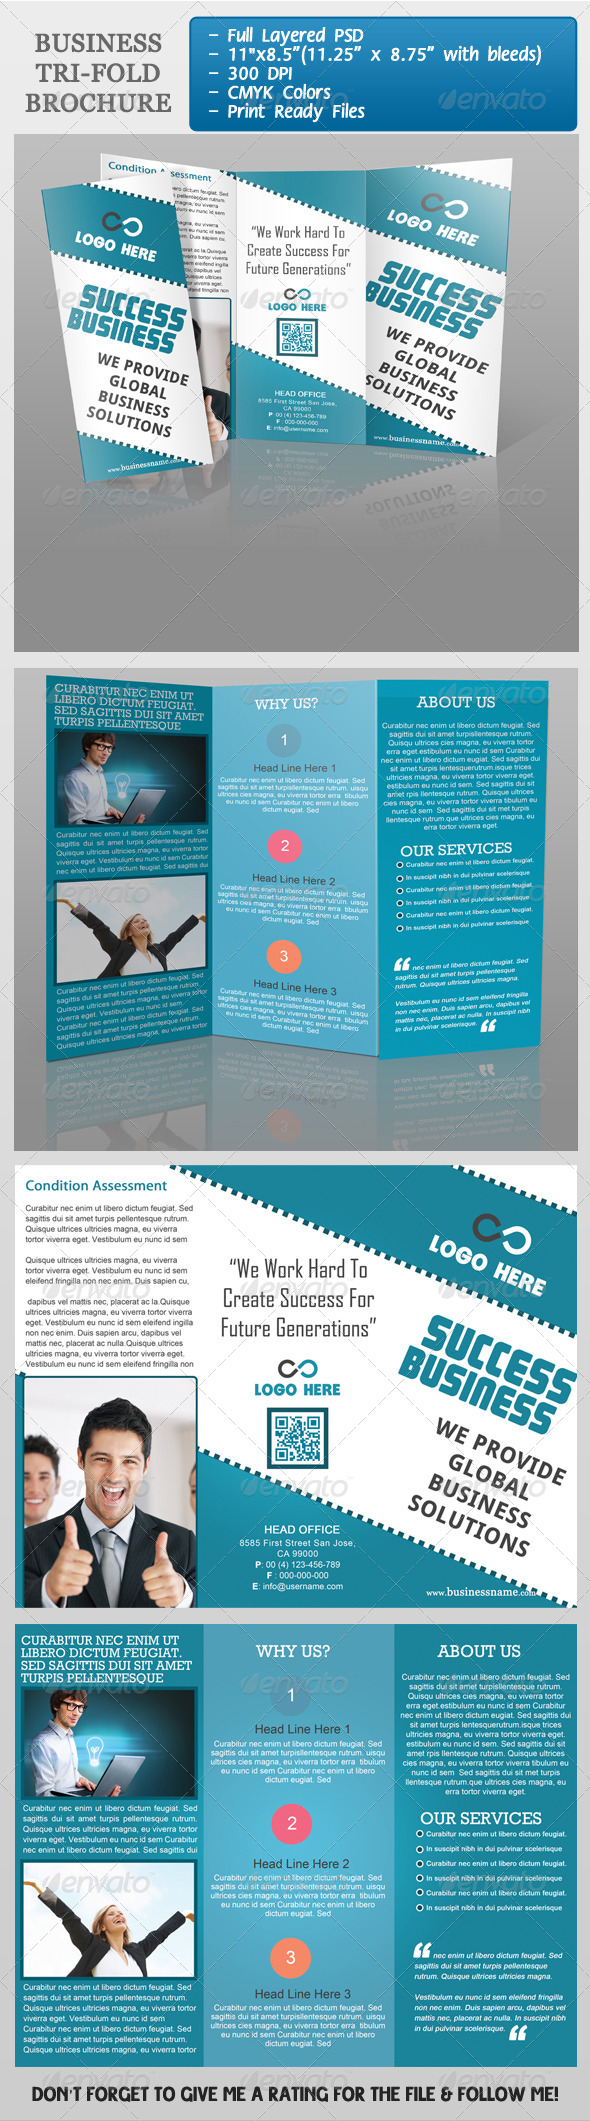 GraphicRiver Business Tri-Fold Brochure 3983476